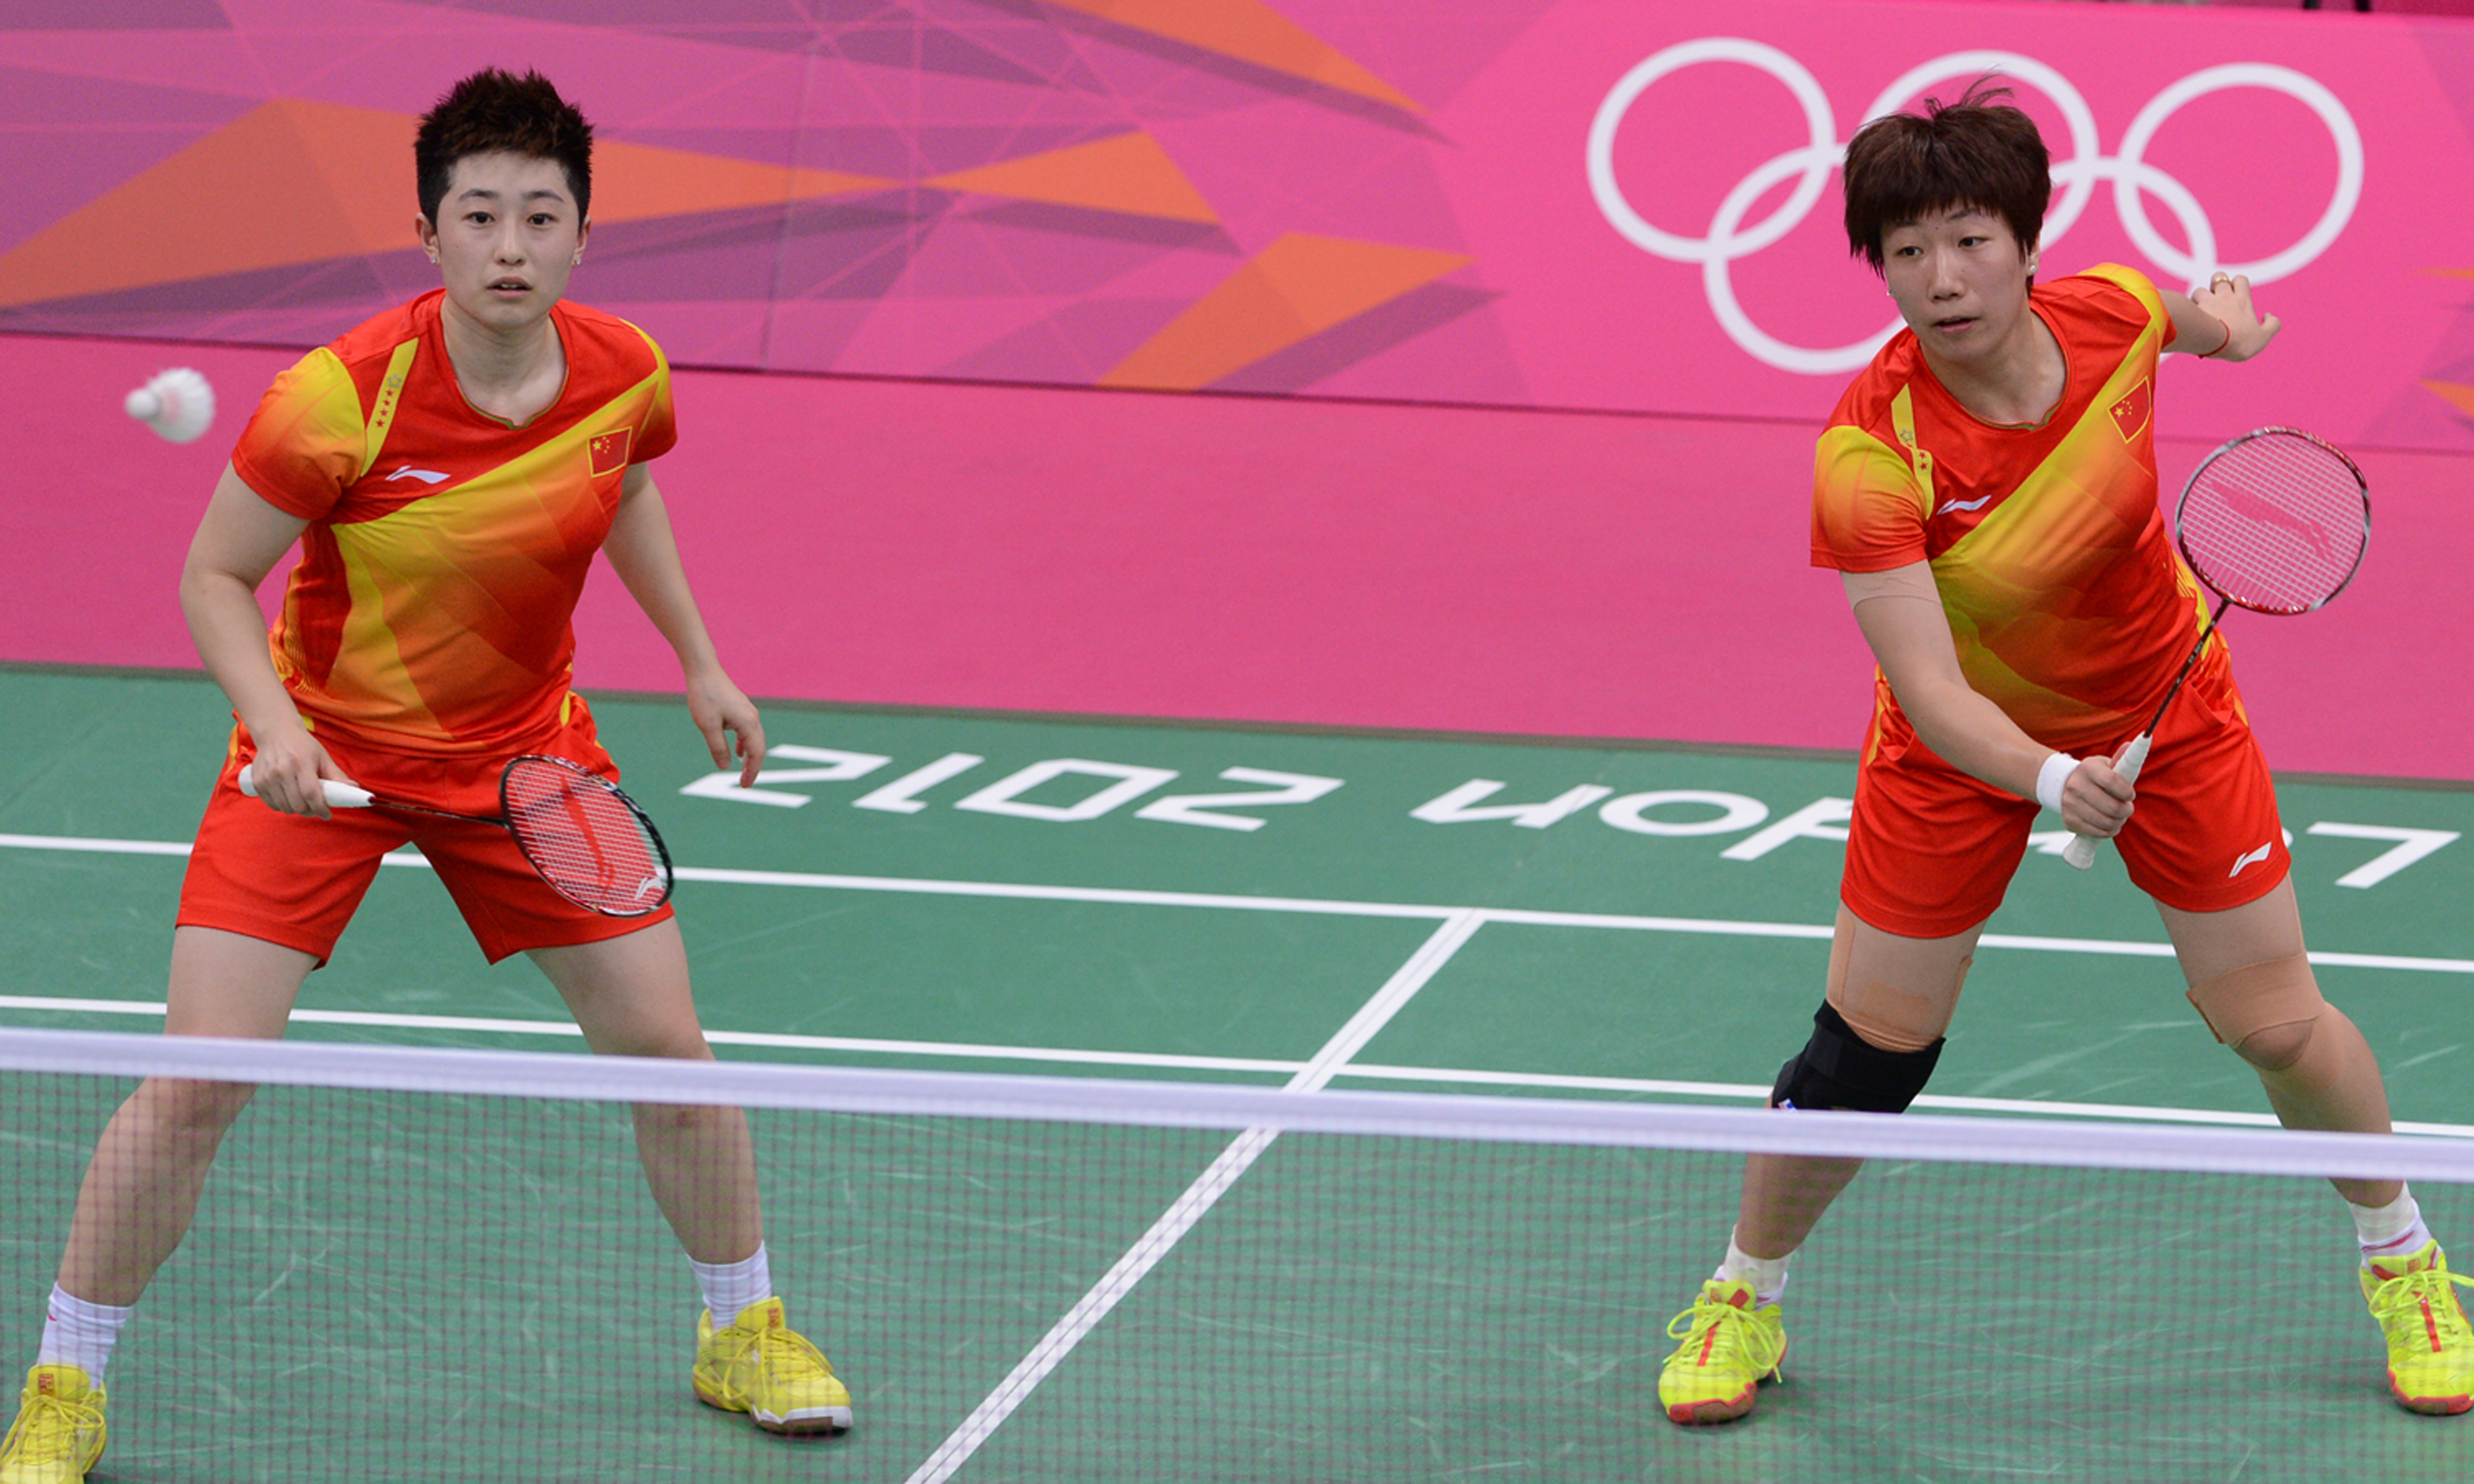 Olympic badminton players disqualified for throwing match